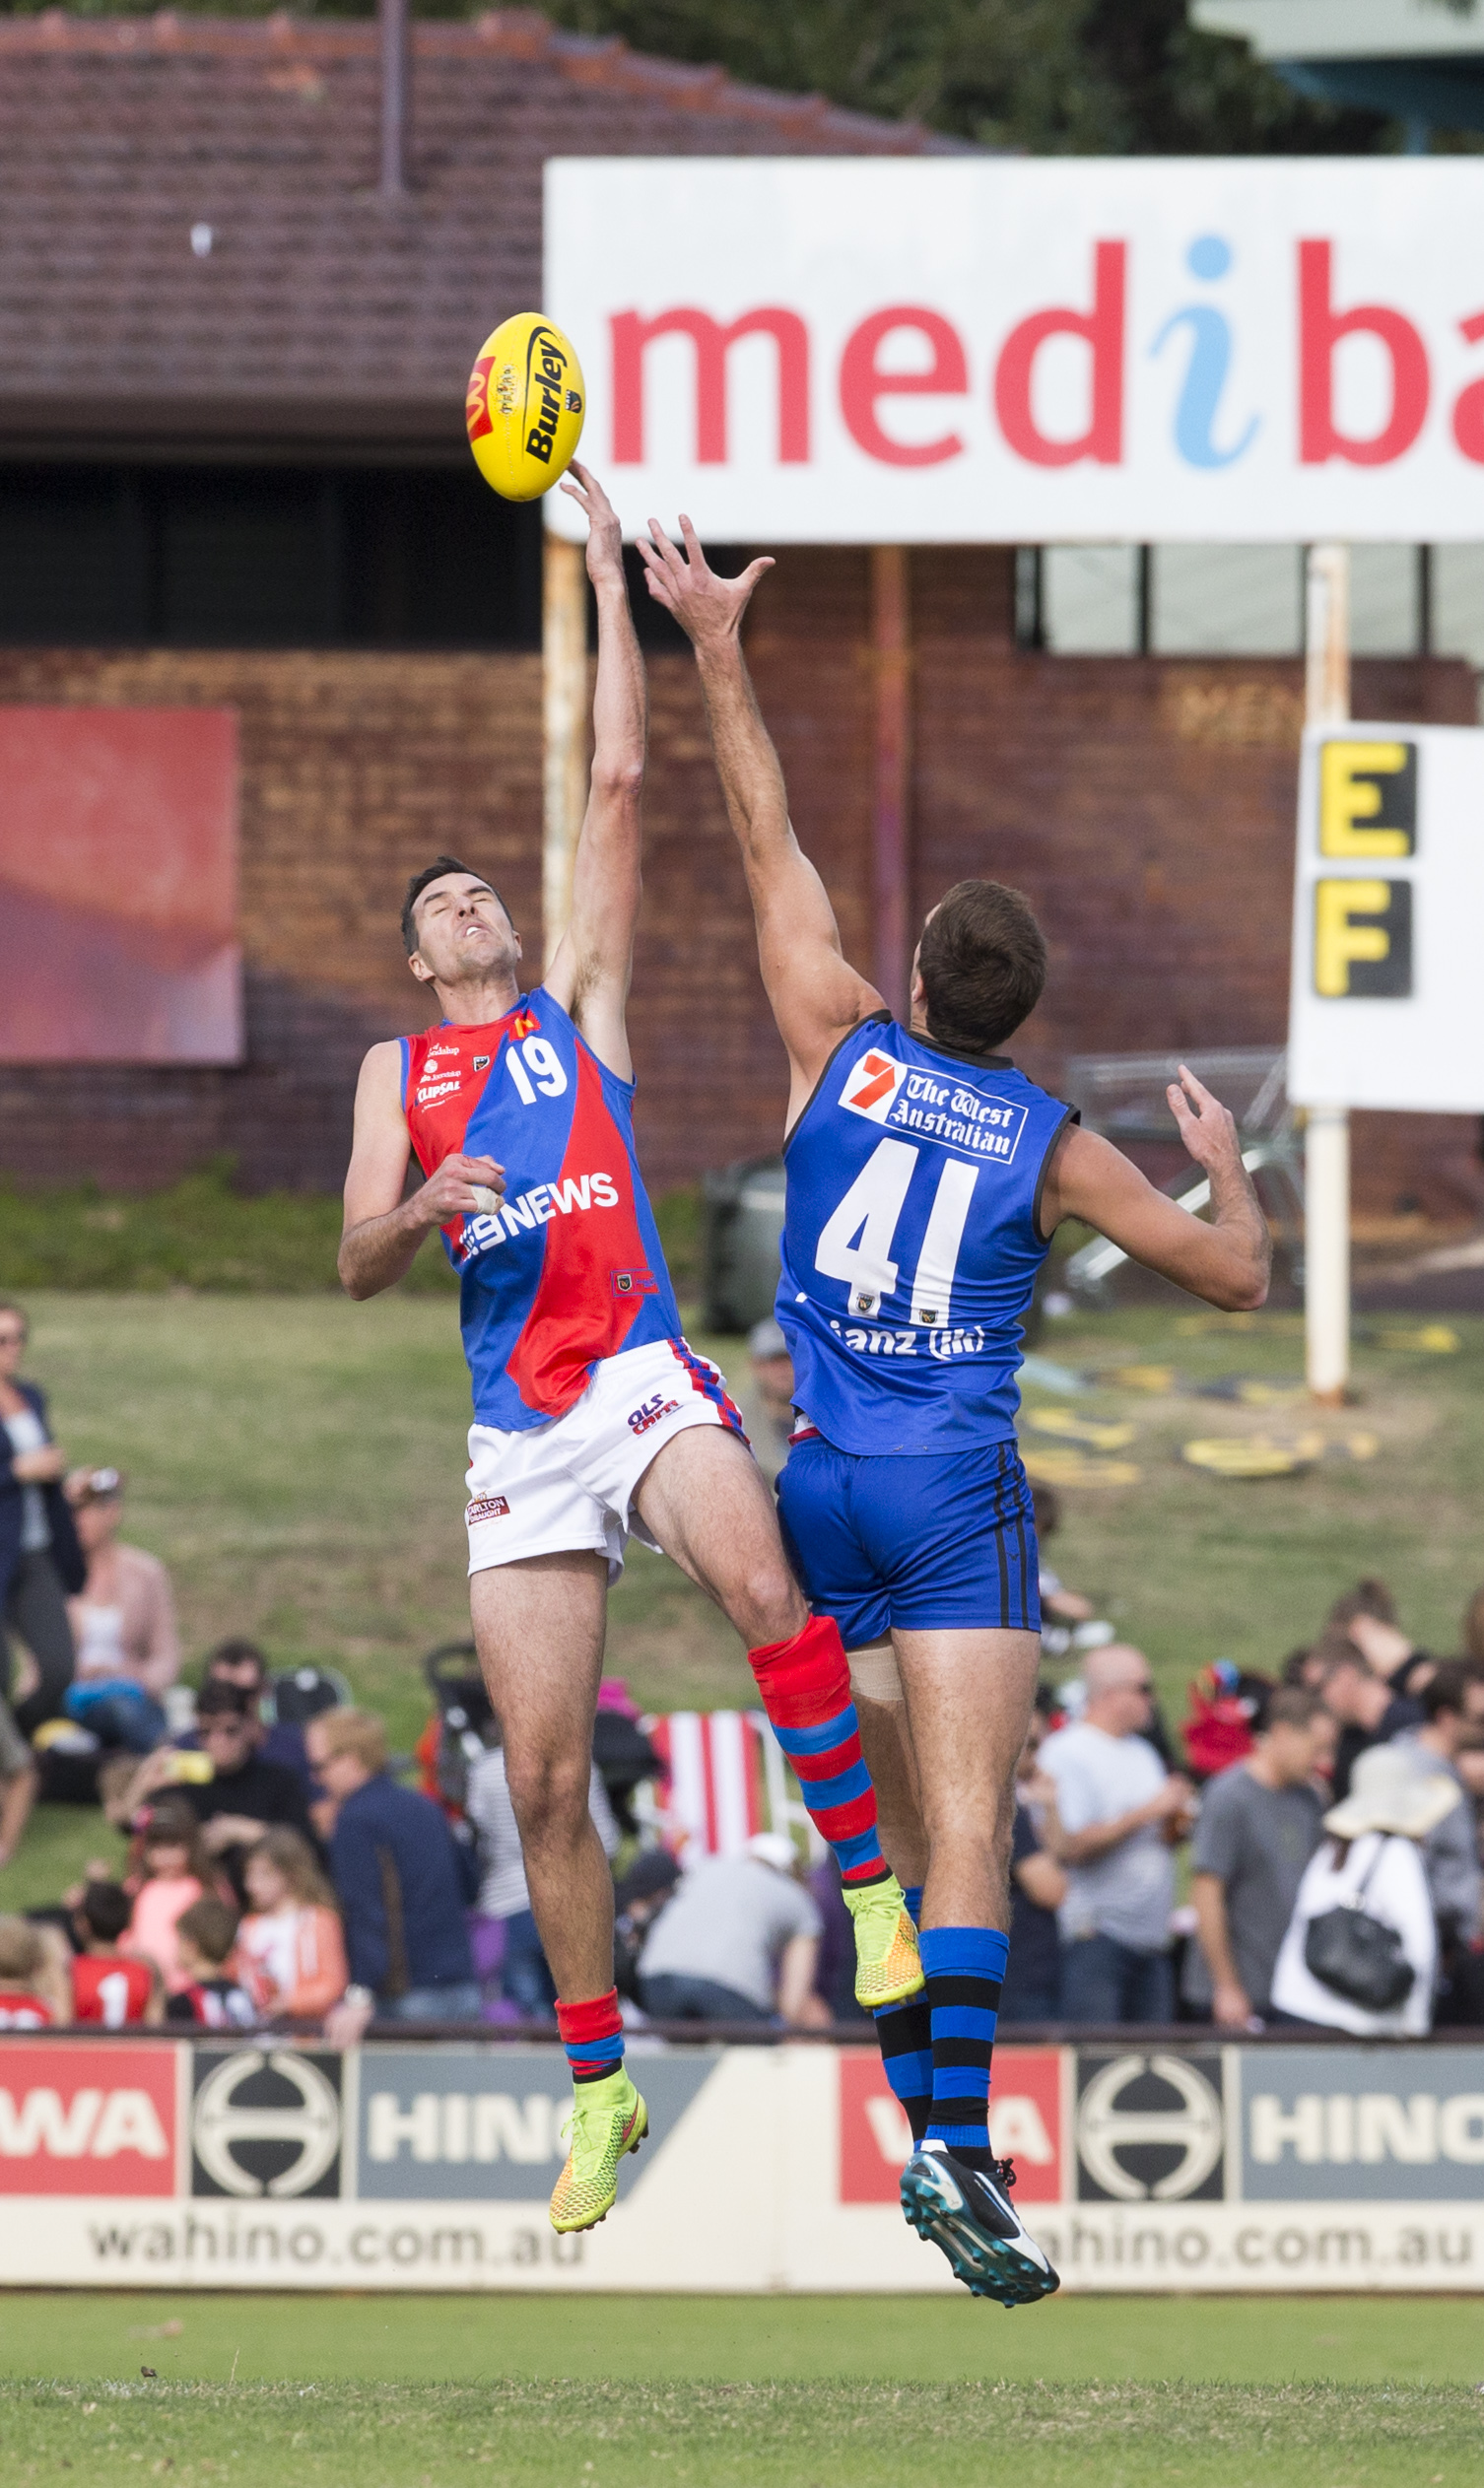 Chris Keunen is likely to return from injury when West Perth faces East Perth after the State Game. Picture: Dan White